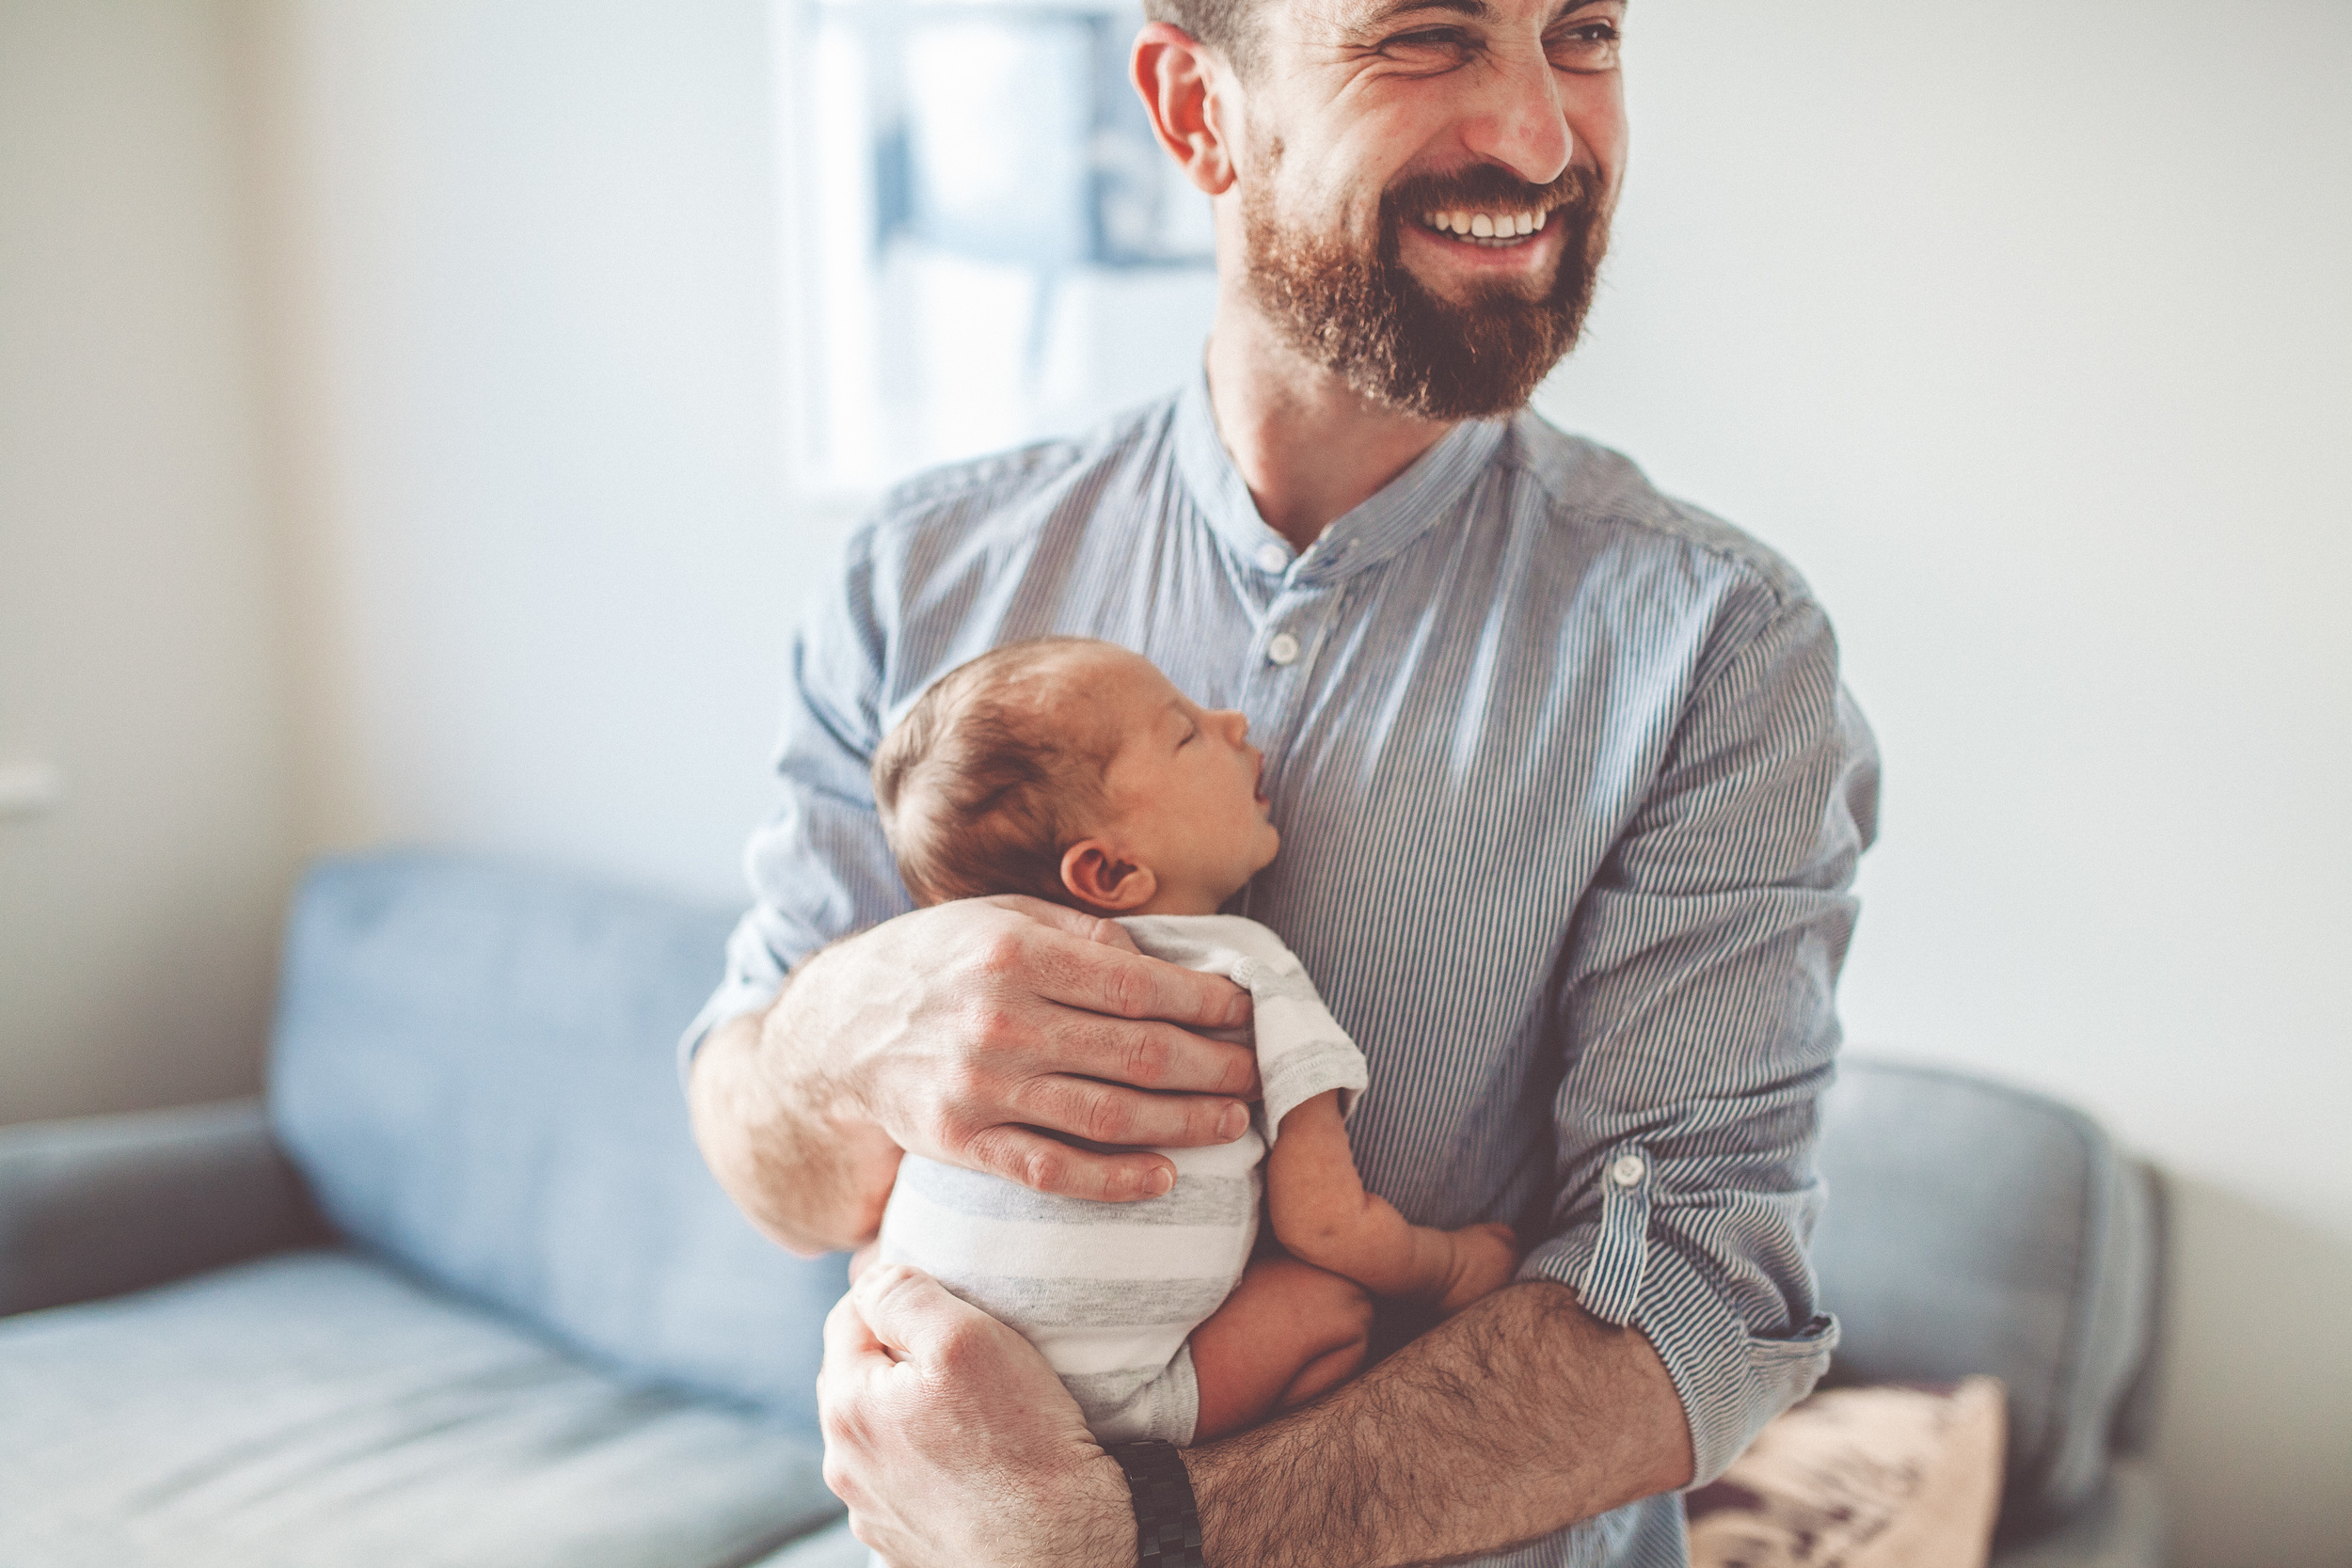 A father holding his baby son